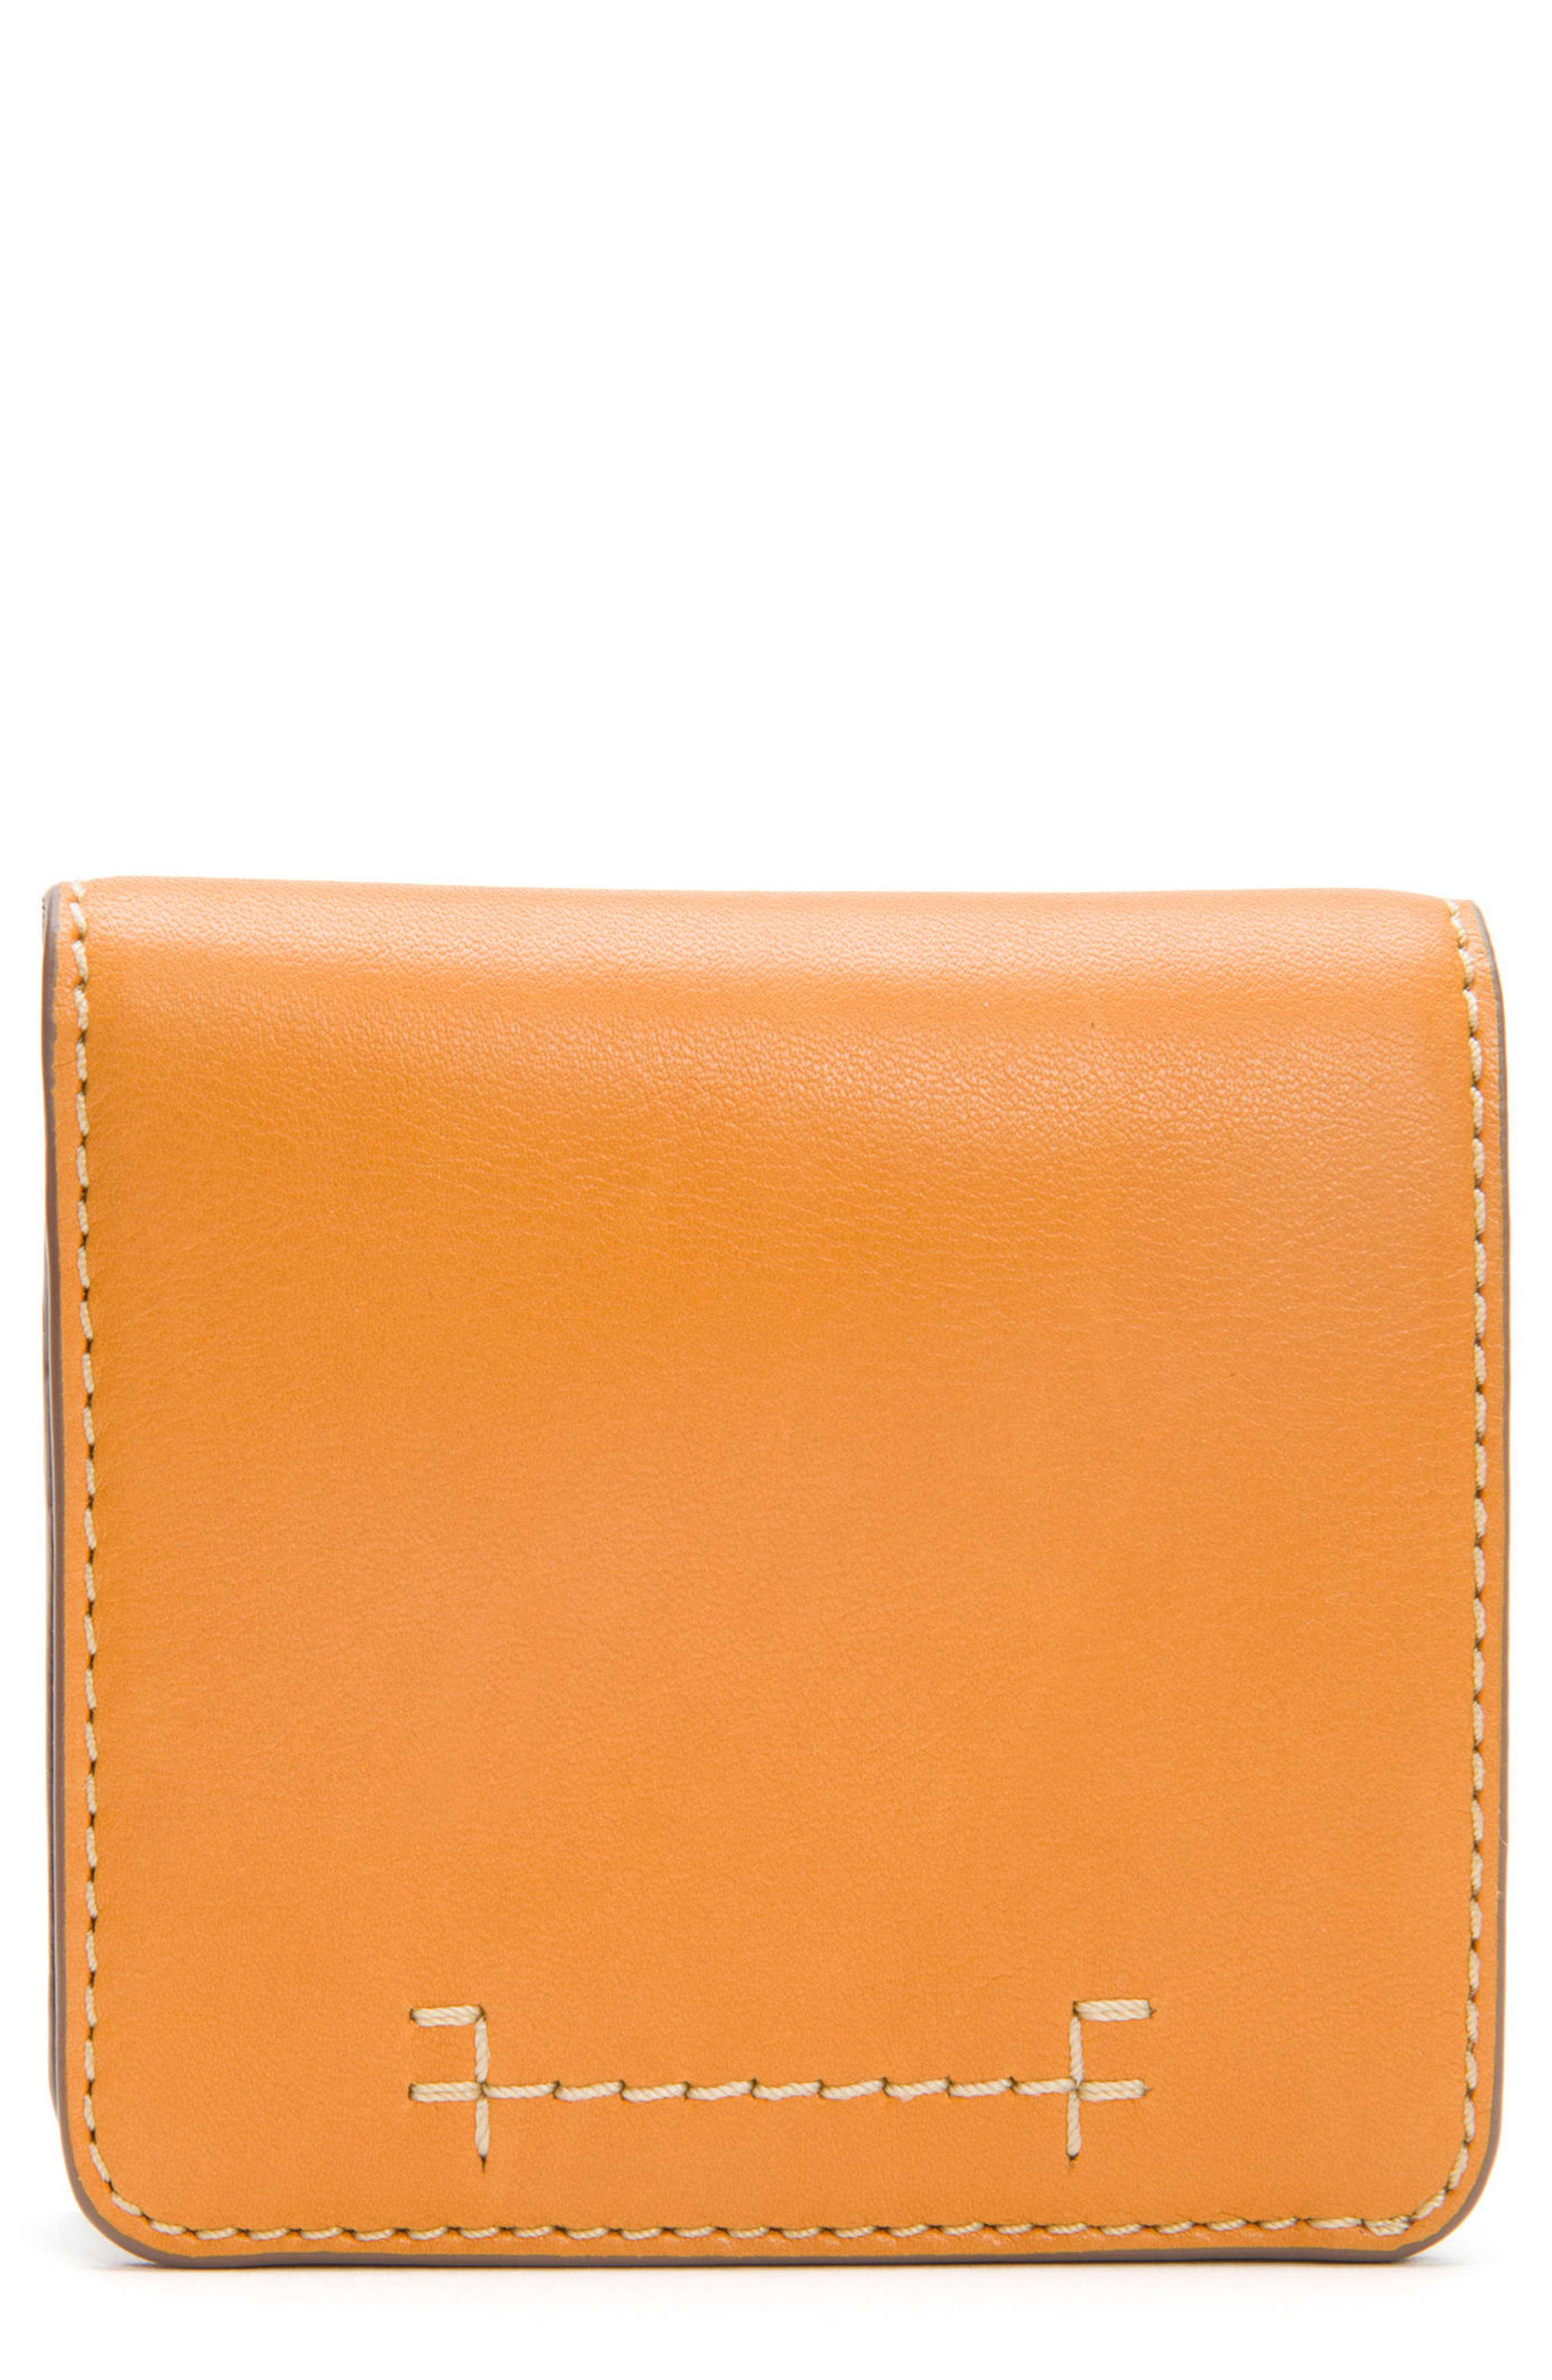 Carson Small Leather Wallet,                         Main,                         color, Sunrise